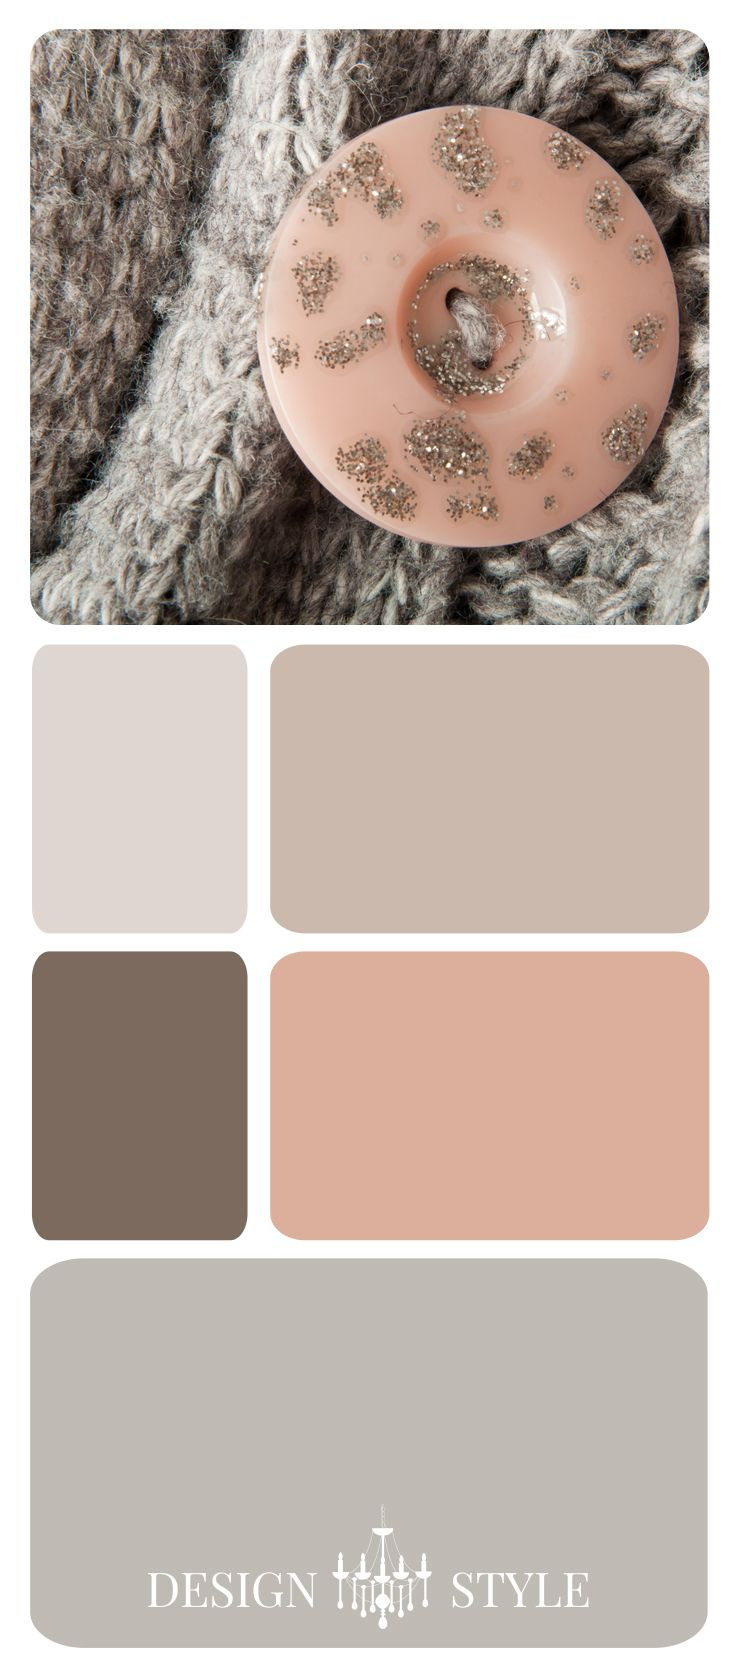 It Also Inspired This Color Scheme Of Silvered Cream Greige Gray Beige Brown Blush Pink And Julana